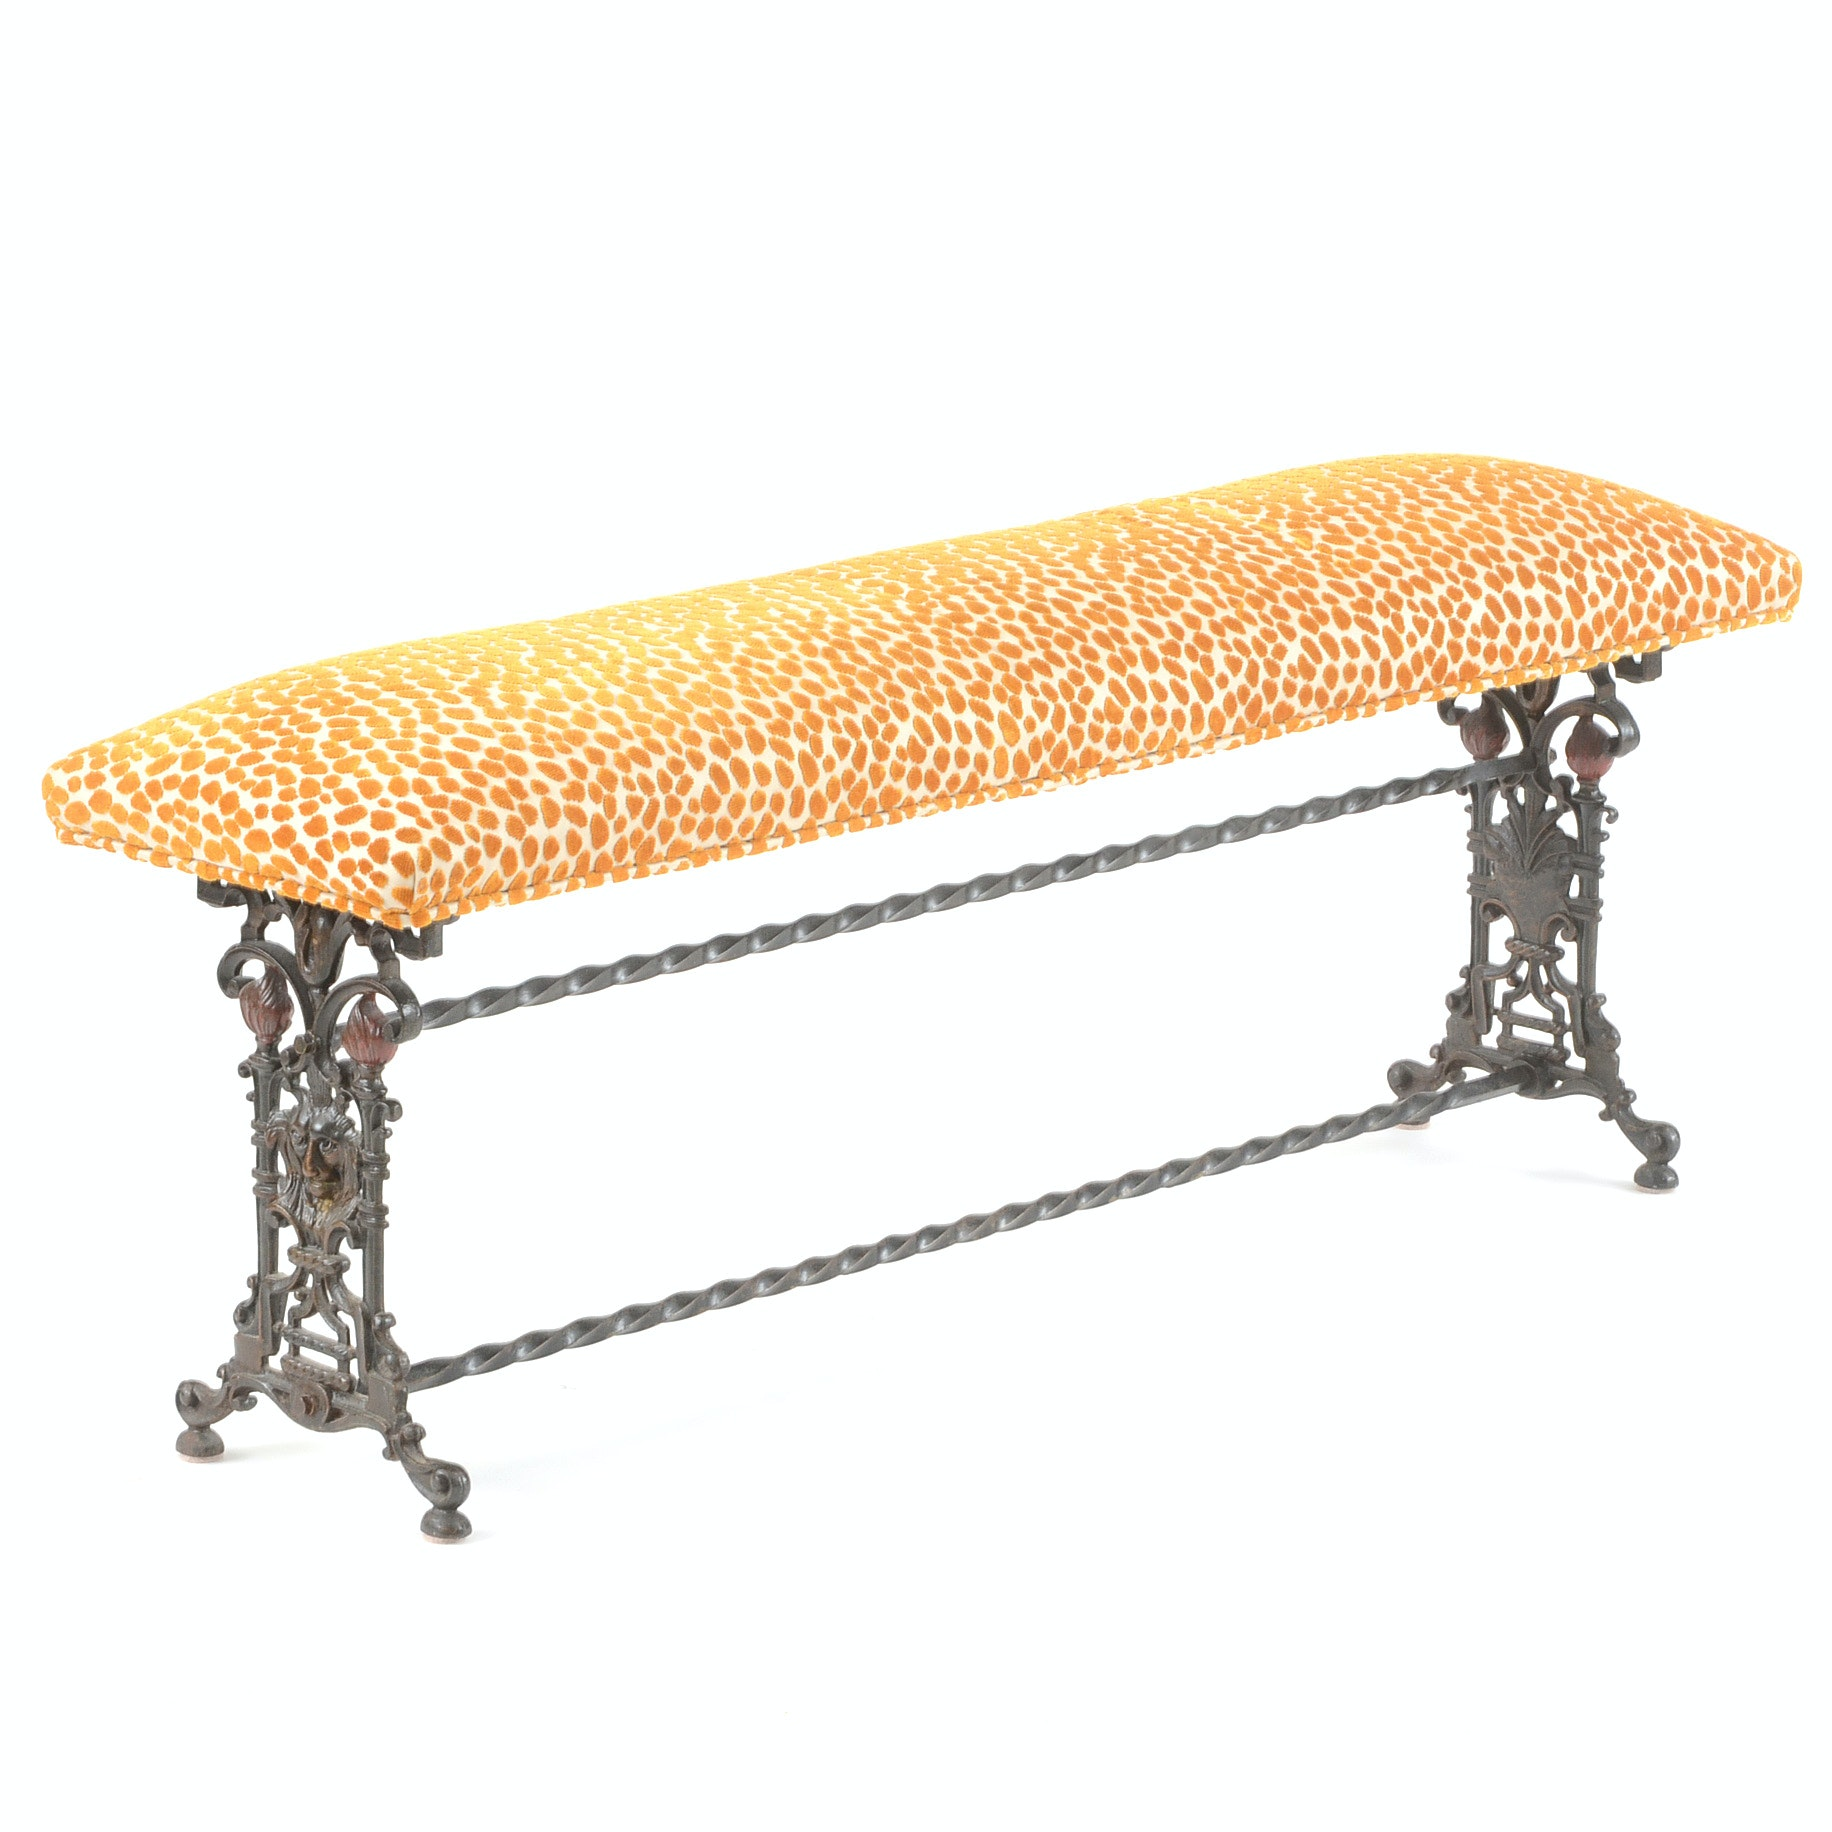 Upholstered Cast Iron Bench